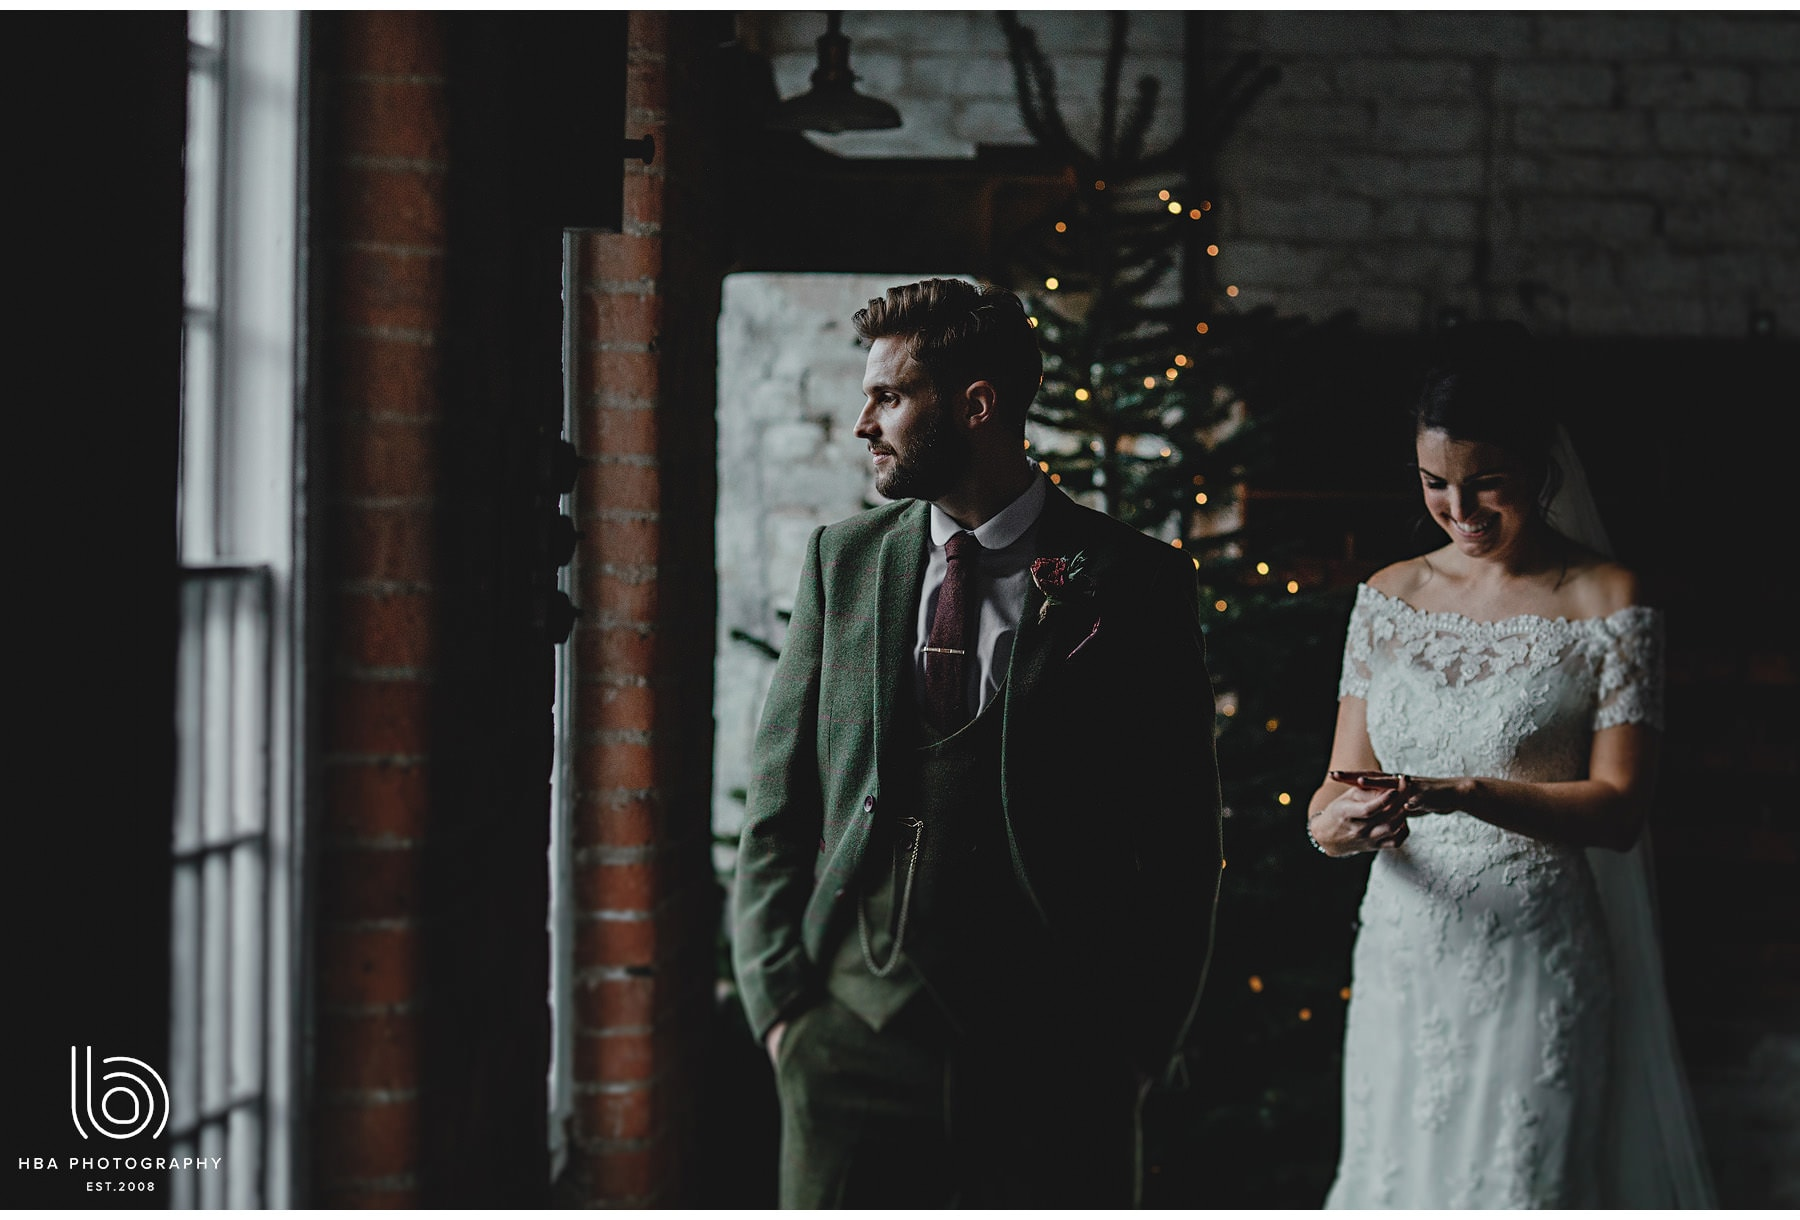 the bride & groom by the christmas tree